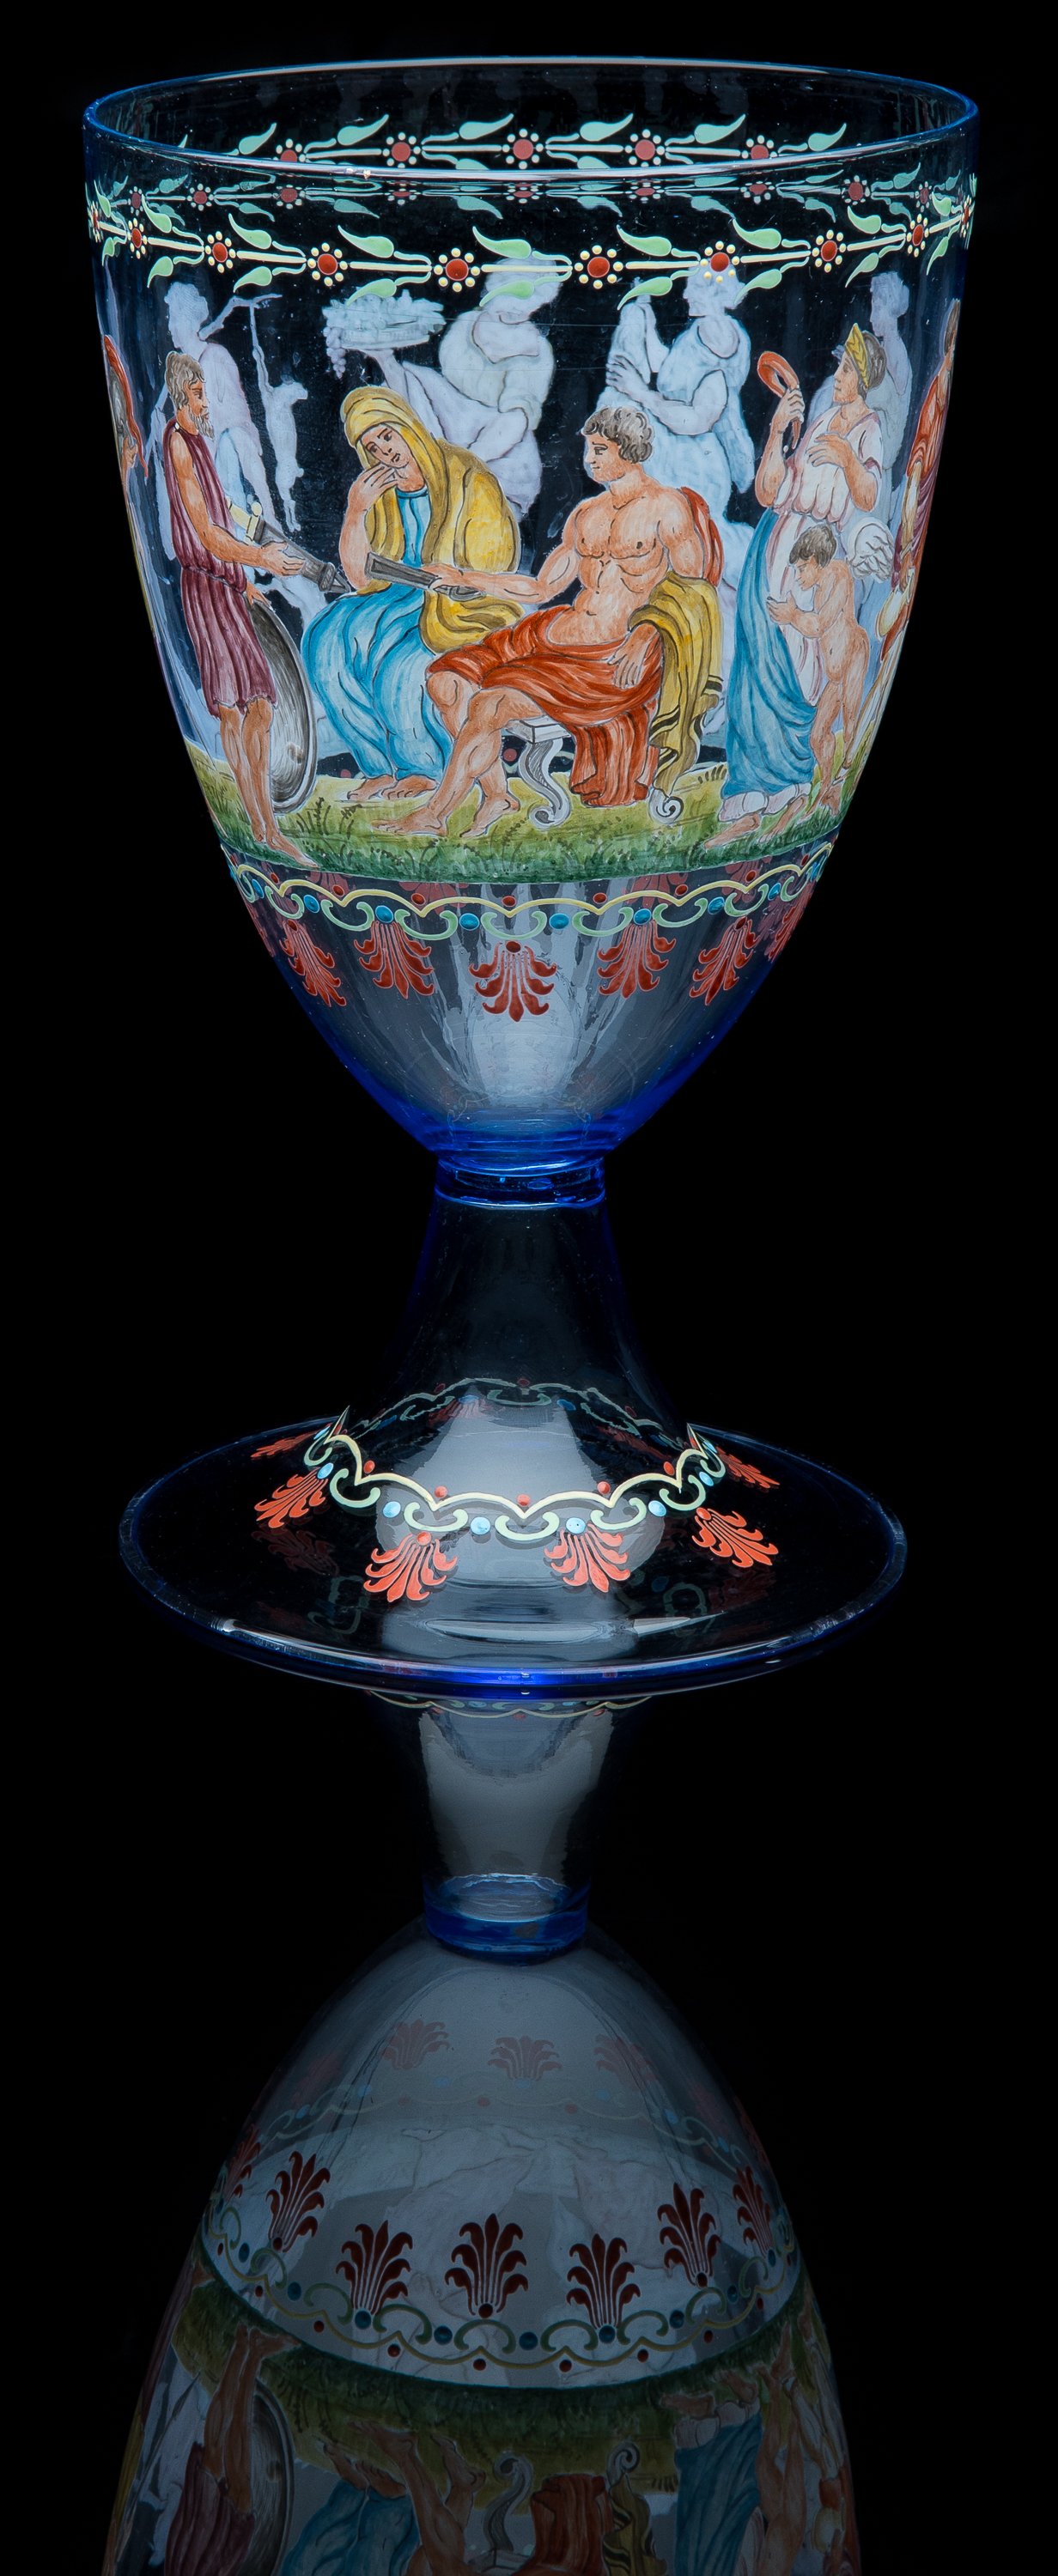 Unknown,  Oversized Enamel Chalice Depicting Royal Offering Parade  (glass, 10.25 inches), VV.1012